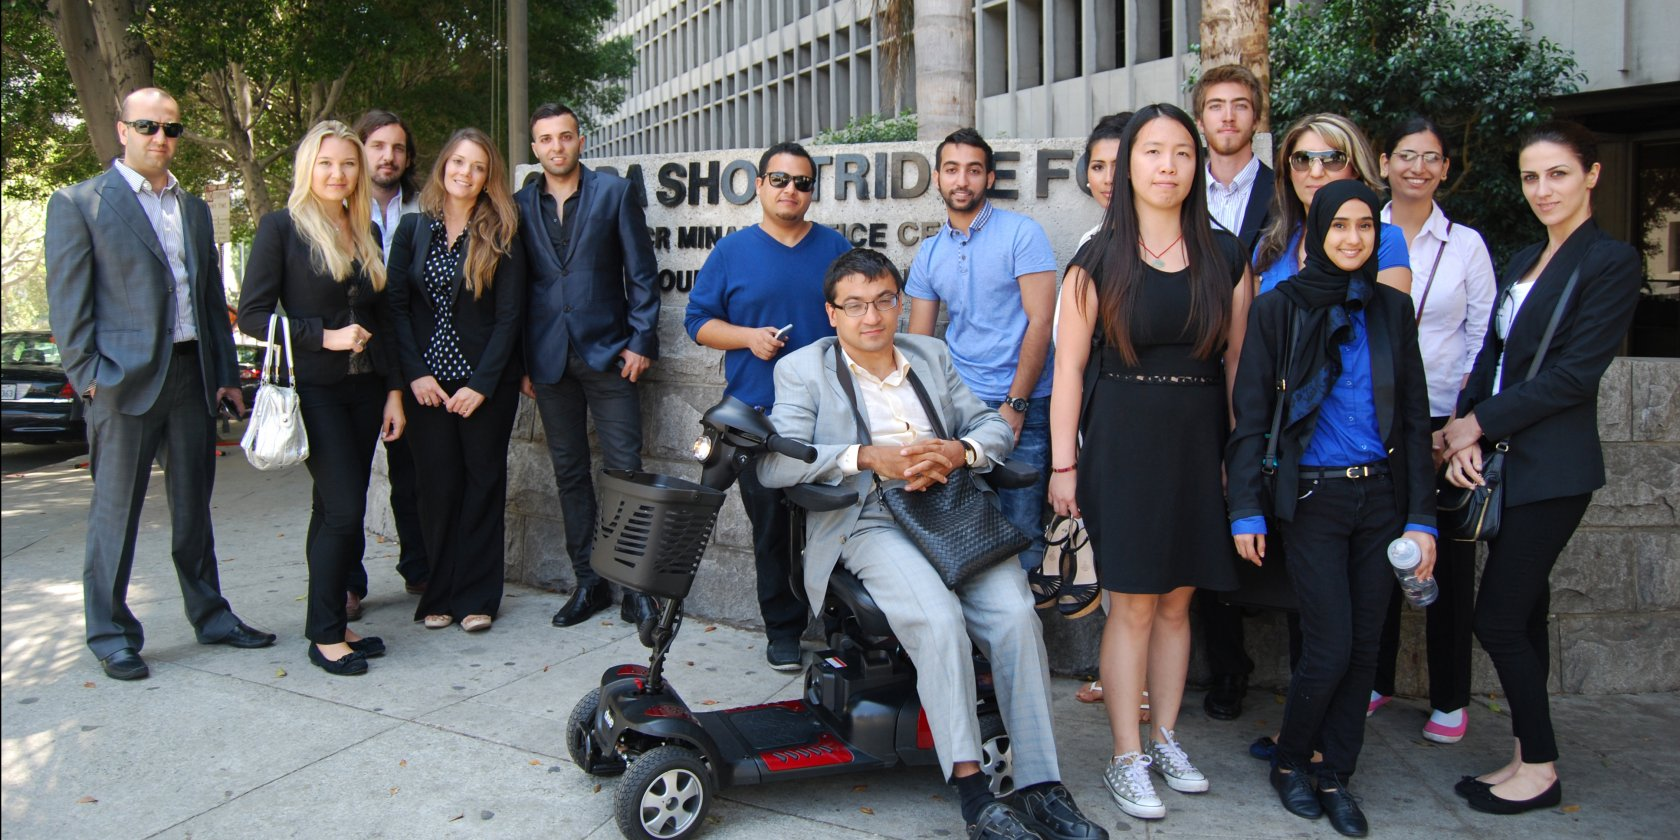 LLM students in front of the courhouse in downtown L.A.